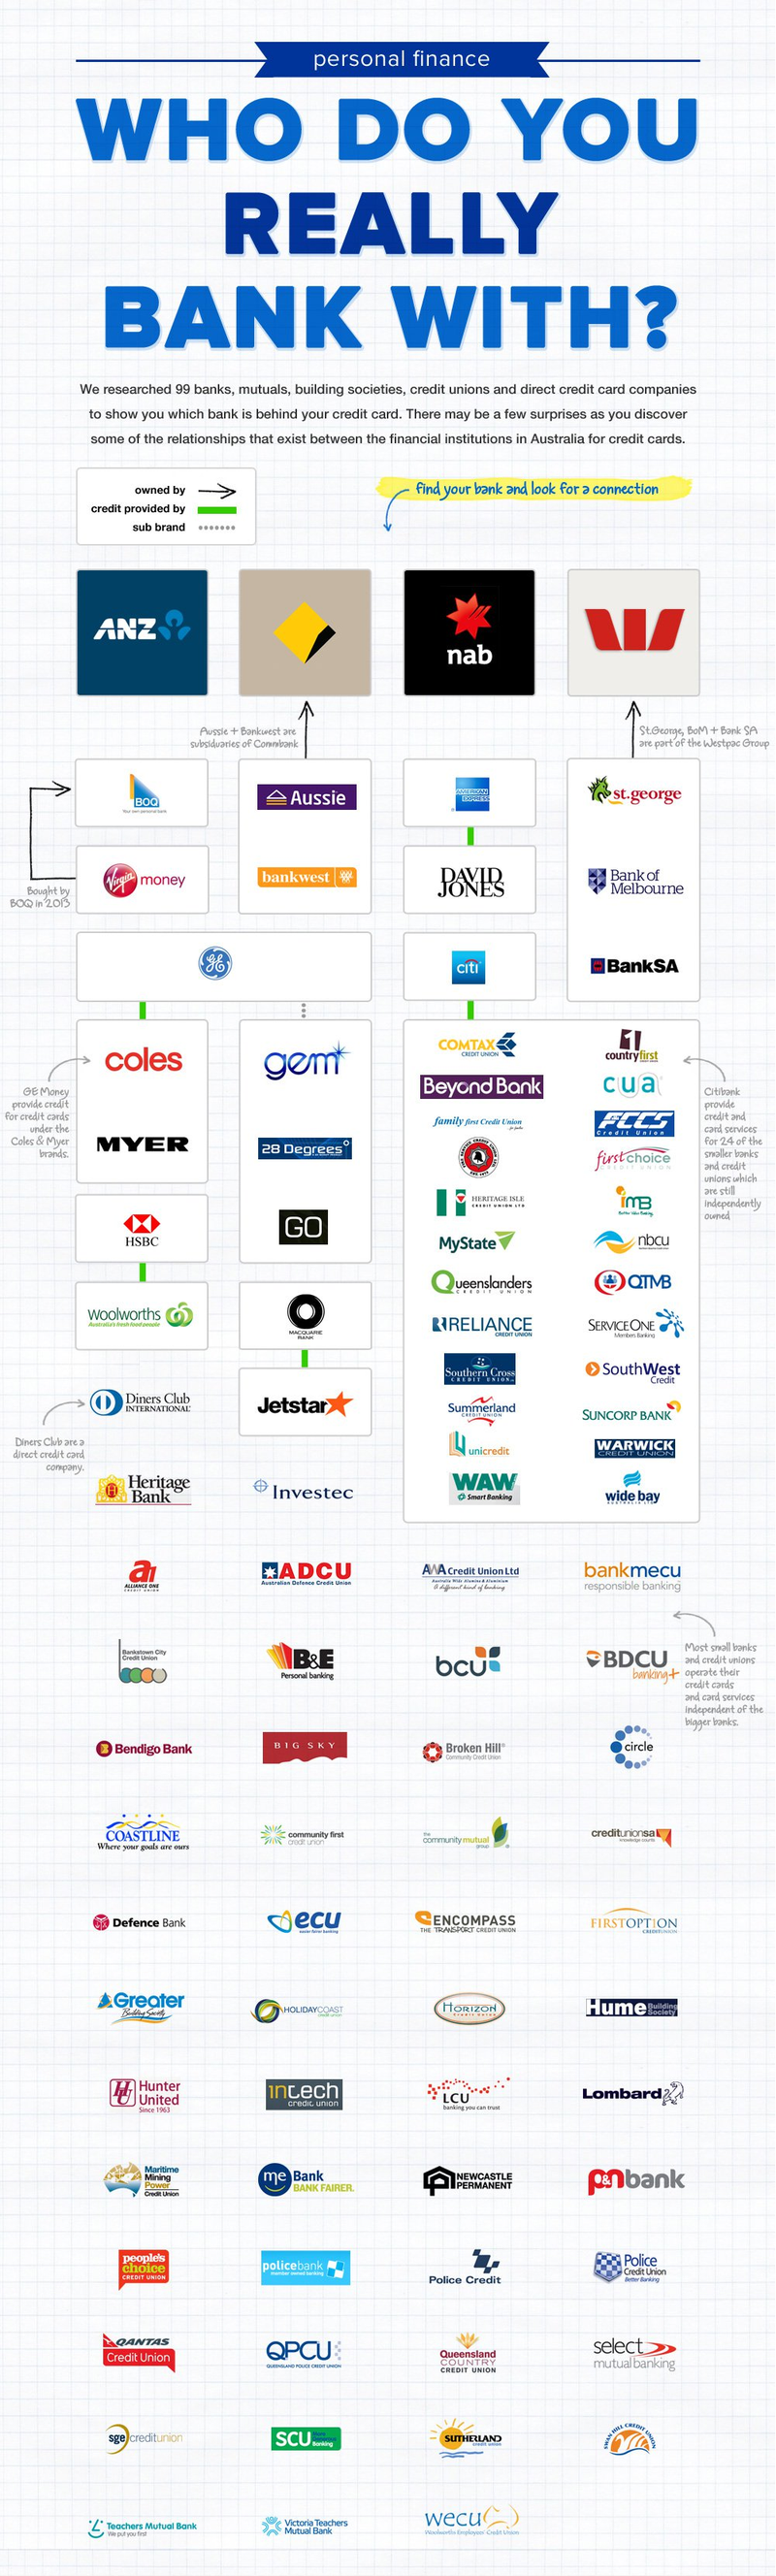 who-do-you-really-bank-with-infographic_cropped.png